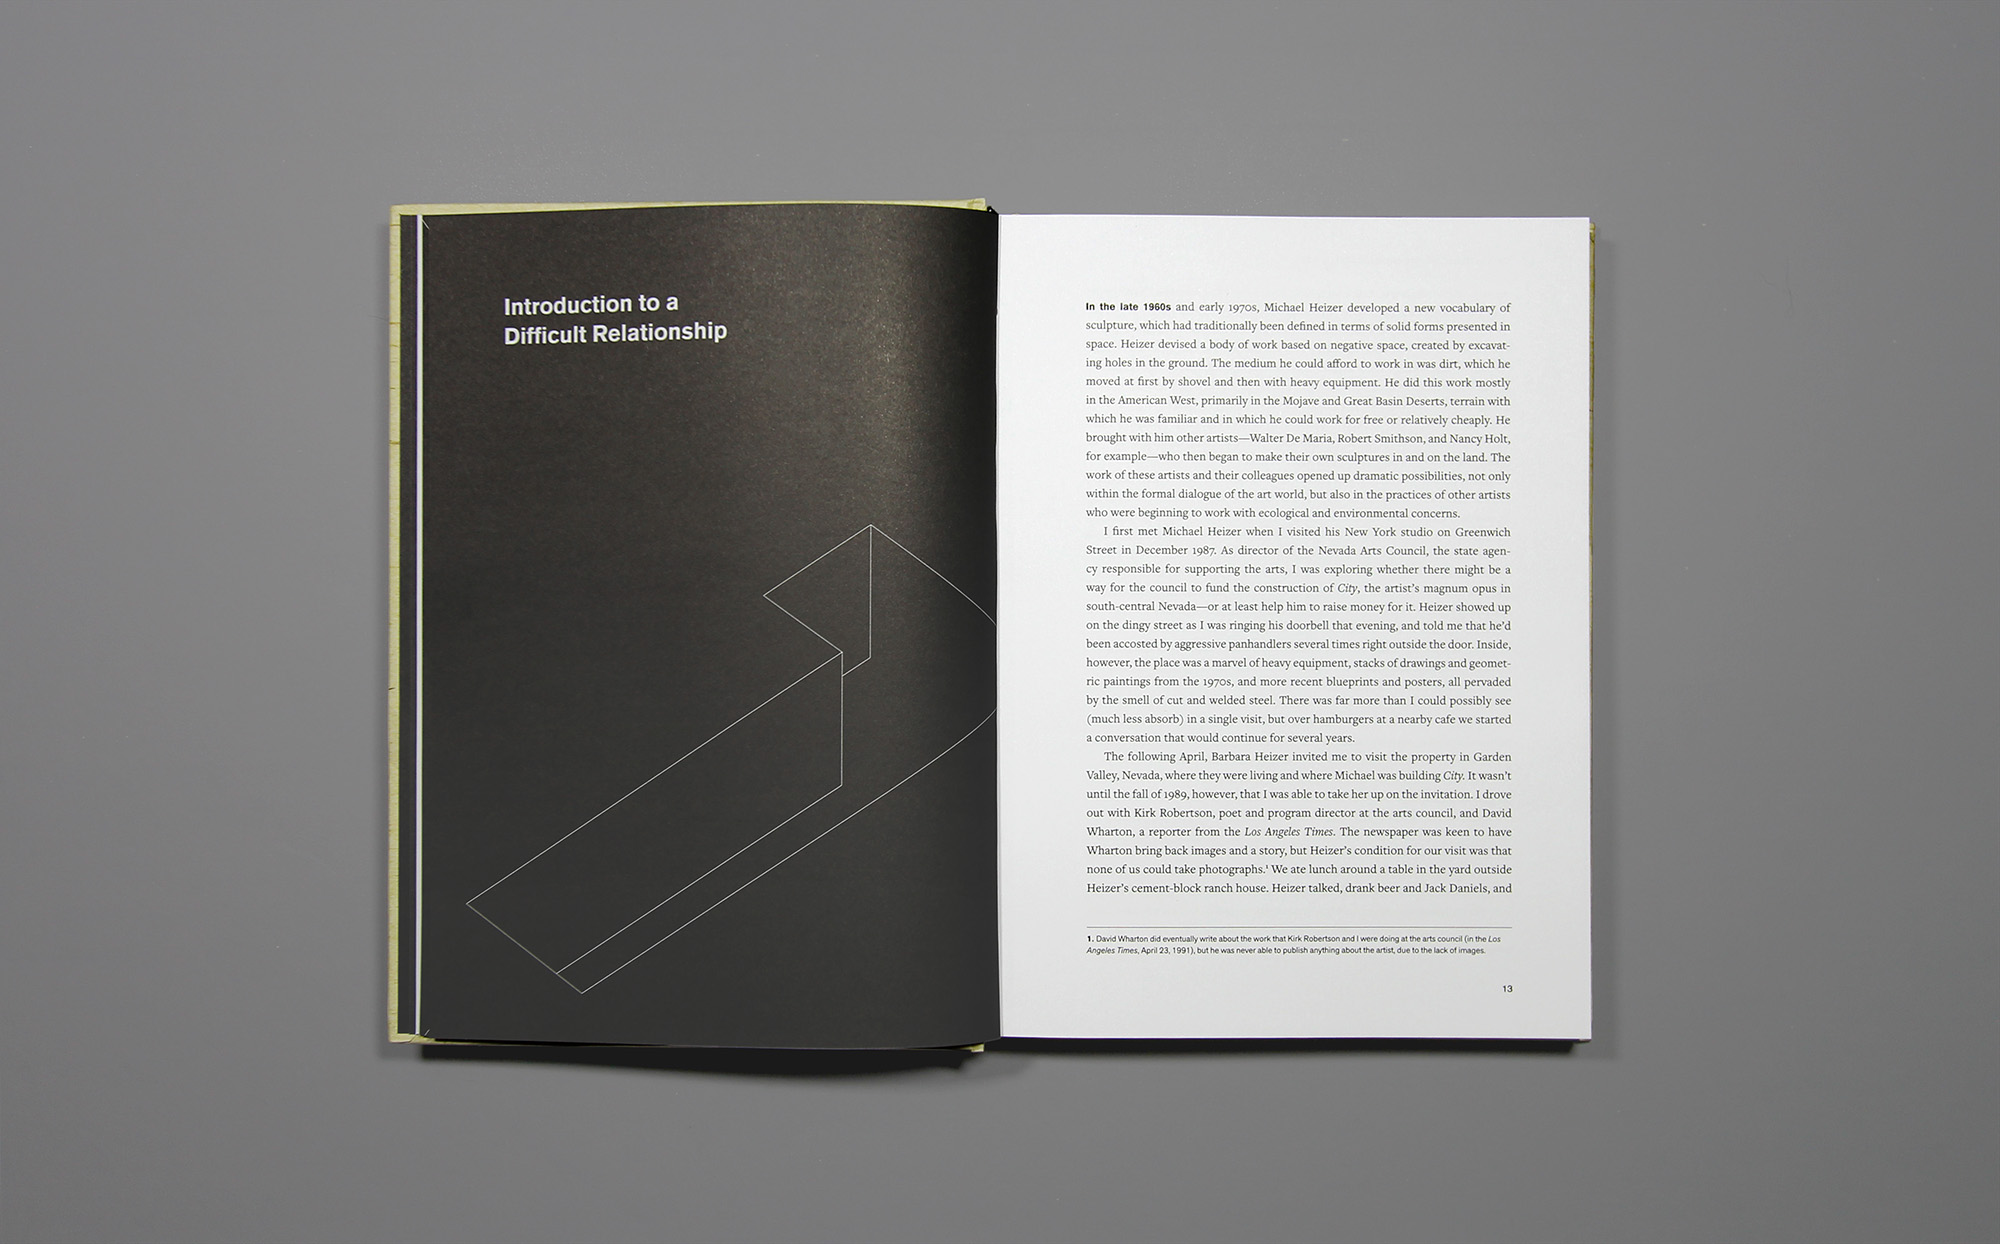 Heizer-book-spread-8-hazen